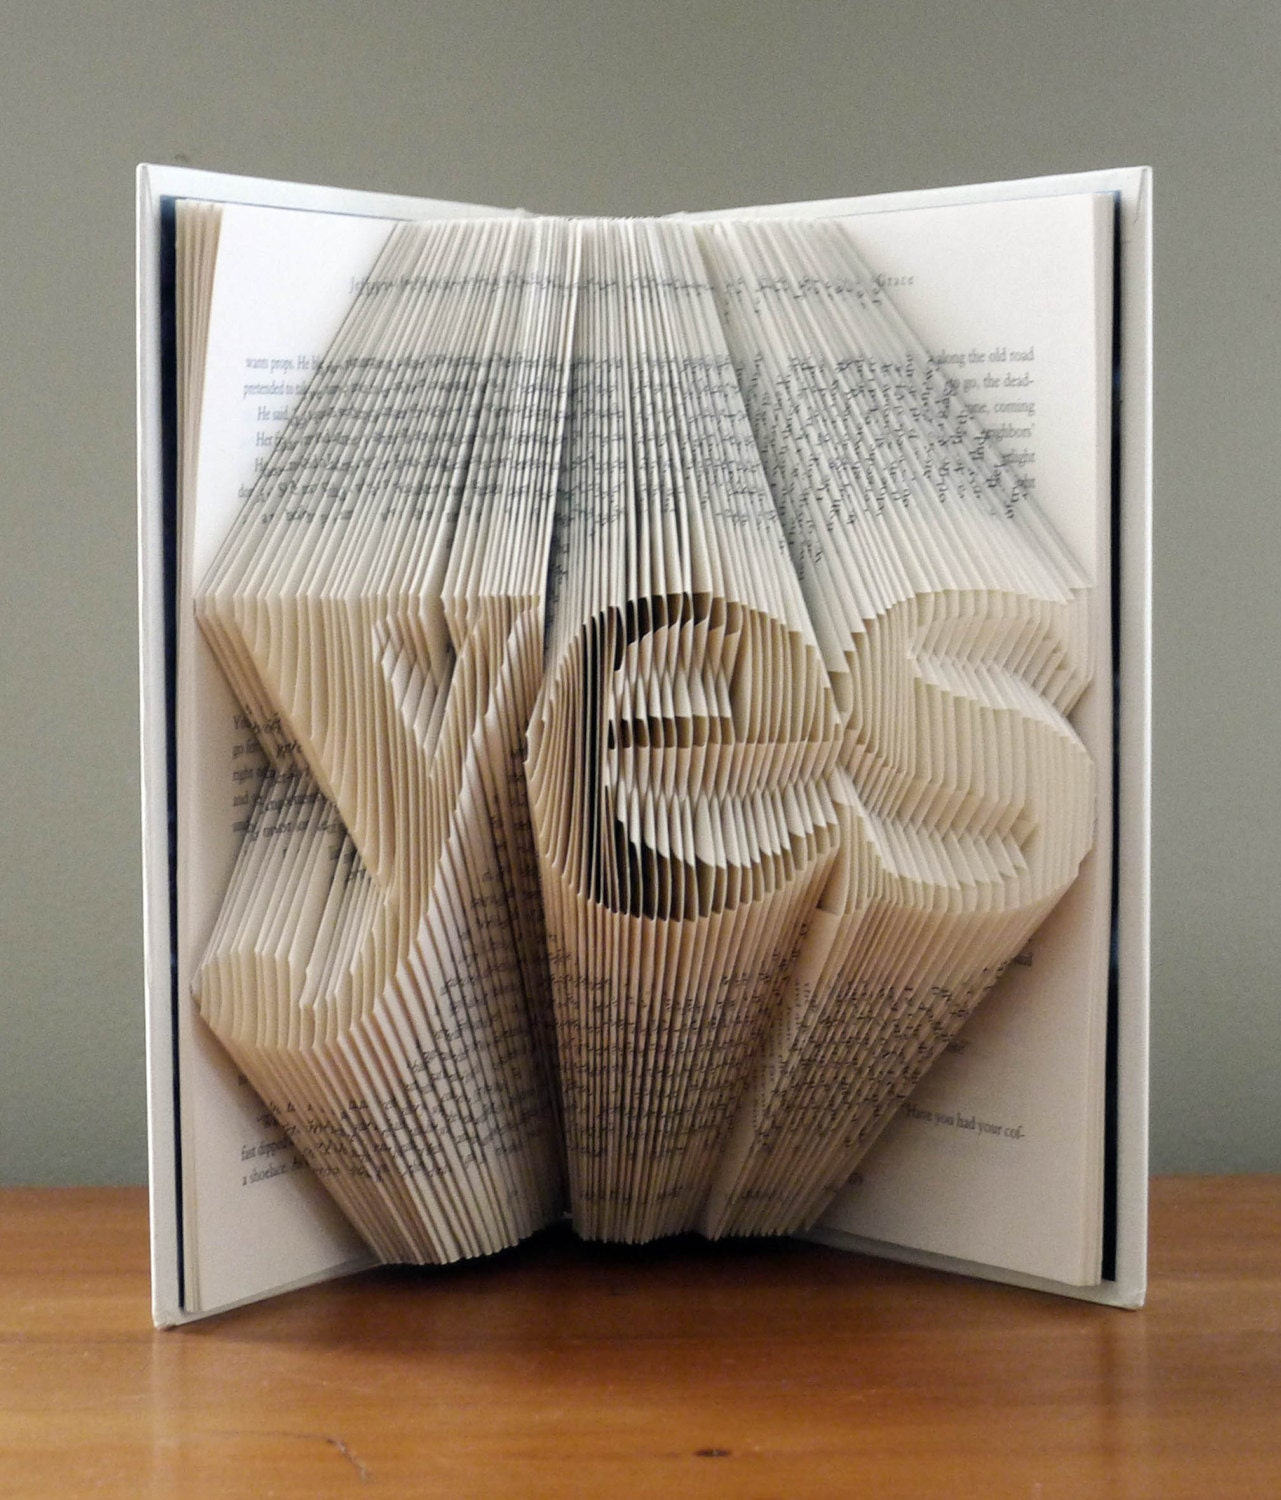 Books Yes Inspirational Art Unique Gift Best Selling Item